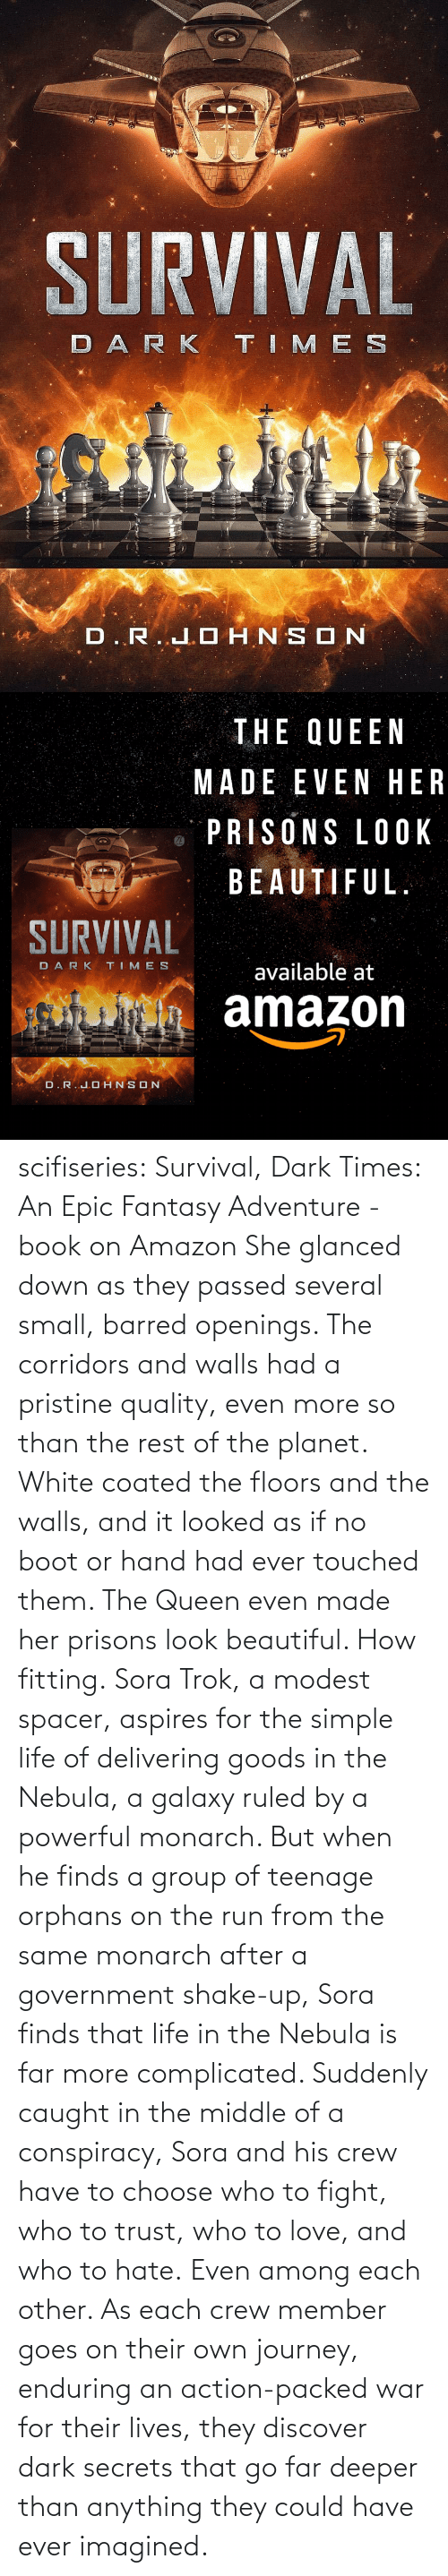 The Middle: scifiseries: Survival, Dark Times: An Epic Fantasy Adventure - book on Amazon  She glanced down as they  passed several small, barred openings. The corridors and walls had a  pristine quality, even more so than the rest of the planet. White coated  the floors and the walls, and it looked as if no boot or hand had ever  touched them.  The Queen even made her prisons look beautiful.  How fitting. Sora  Trok, a modest spacer, aspires for the simple life of delivering goods  in the Nebula, a galaxy ruled by a powerful monarch. But when he finds a  group of teenage orphans on the run from the same monarch after a  government shake-up, Sora finds that life in the Nebula is far more complicated.  Suddenly  caught in the middle of a conspiracy, Sora and his crew have to choose  who to fight, who to trust, who to love, and who to hate. Even among each other.  As  each crew member goes on their own journey, enduring an action-packed  war for their lives, they discover dark secrets that go far deeper than  anything they could have ever imagined.